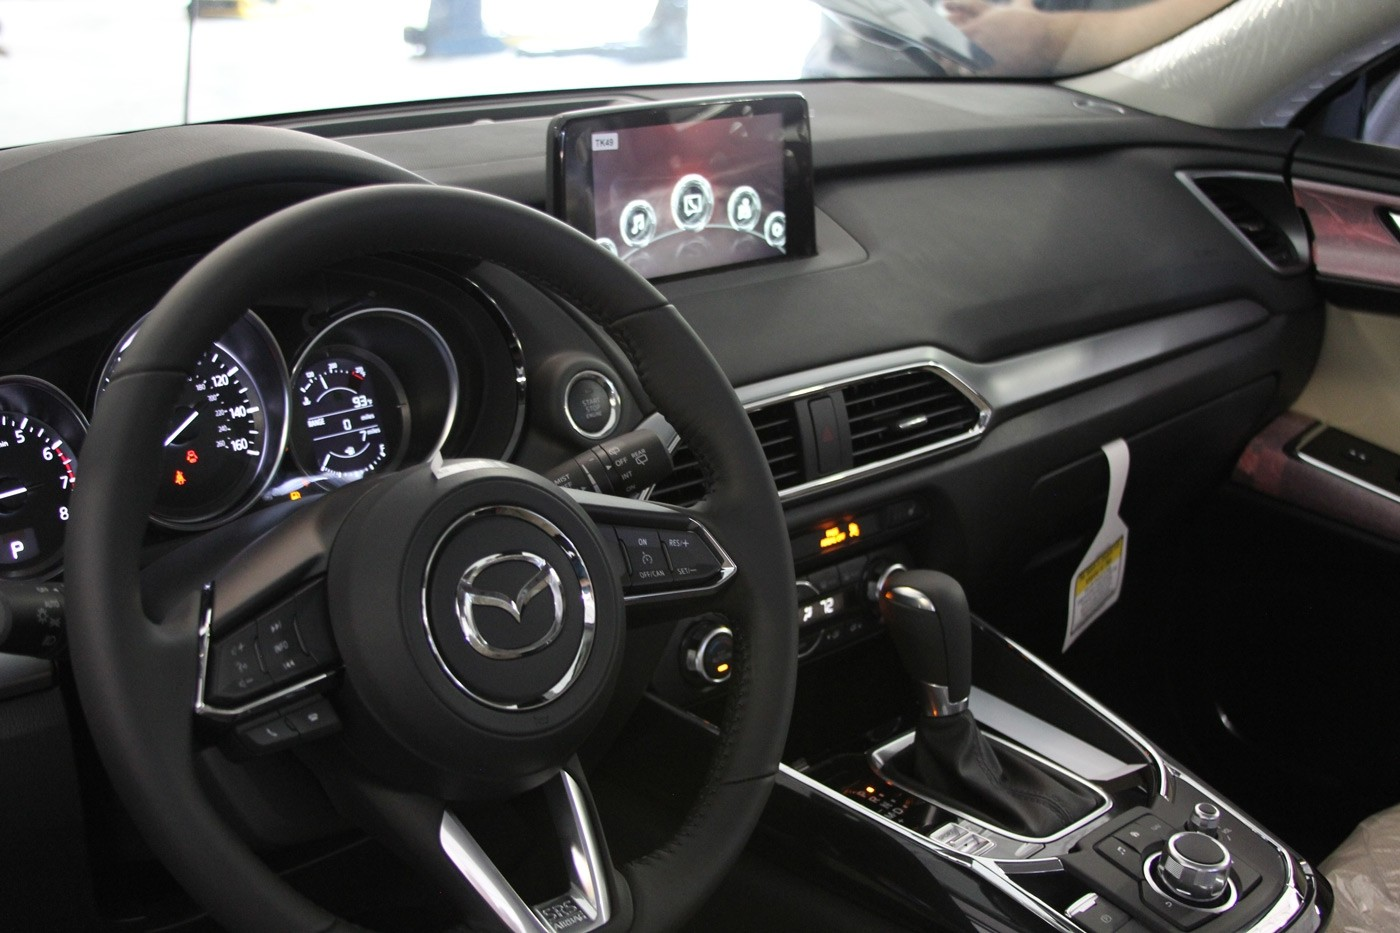 2016 Mazda CX-9 interior dashboard Sport Mazda in Orlando, FL